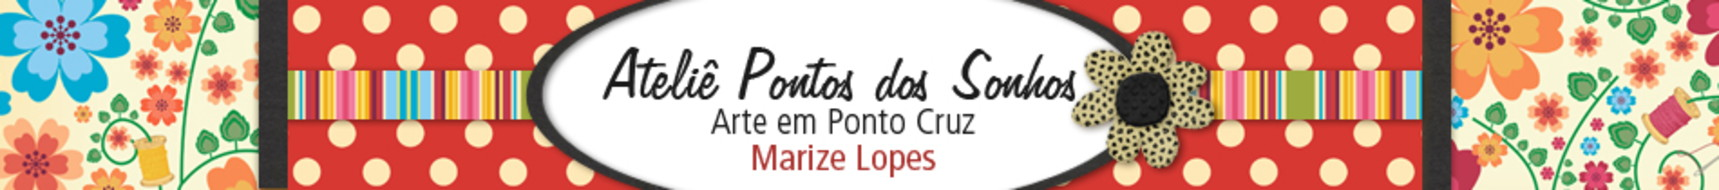 Ateli Pontos dos Sonhos - Arte em ponto cruz